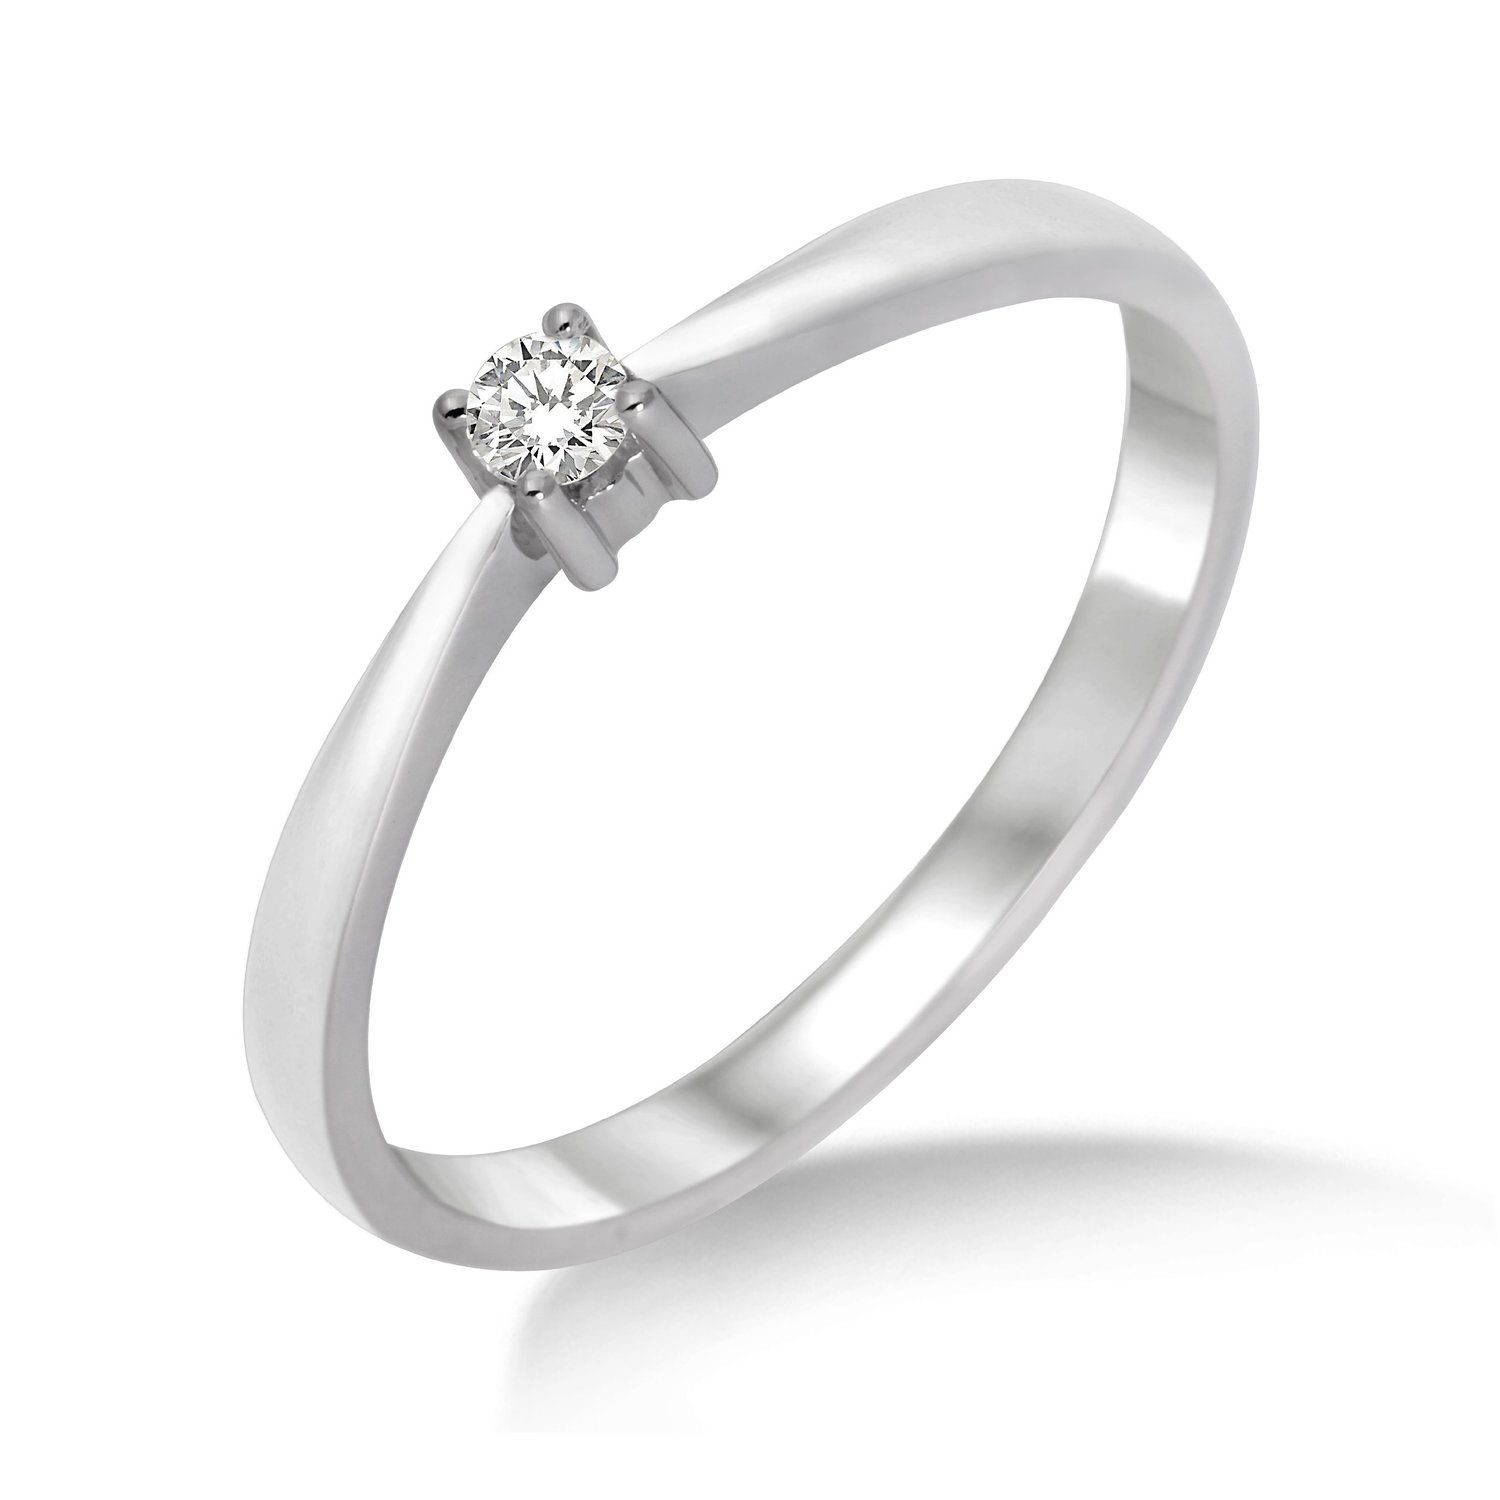 Miore - M9014RM - Bague Solitaire Femme - Or blanc 375 1000 (9 carats 4b5aa3eba809